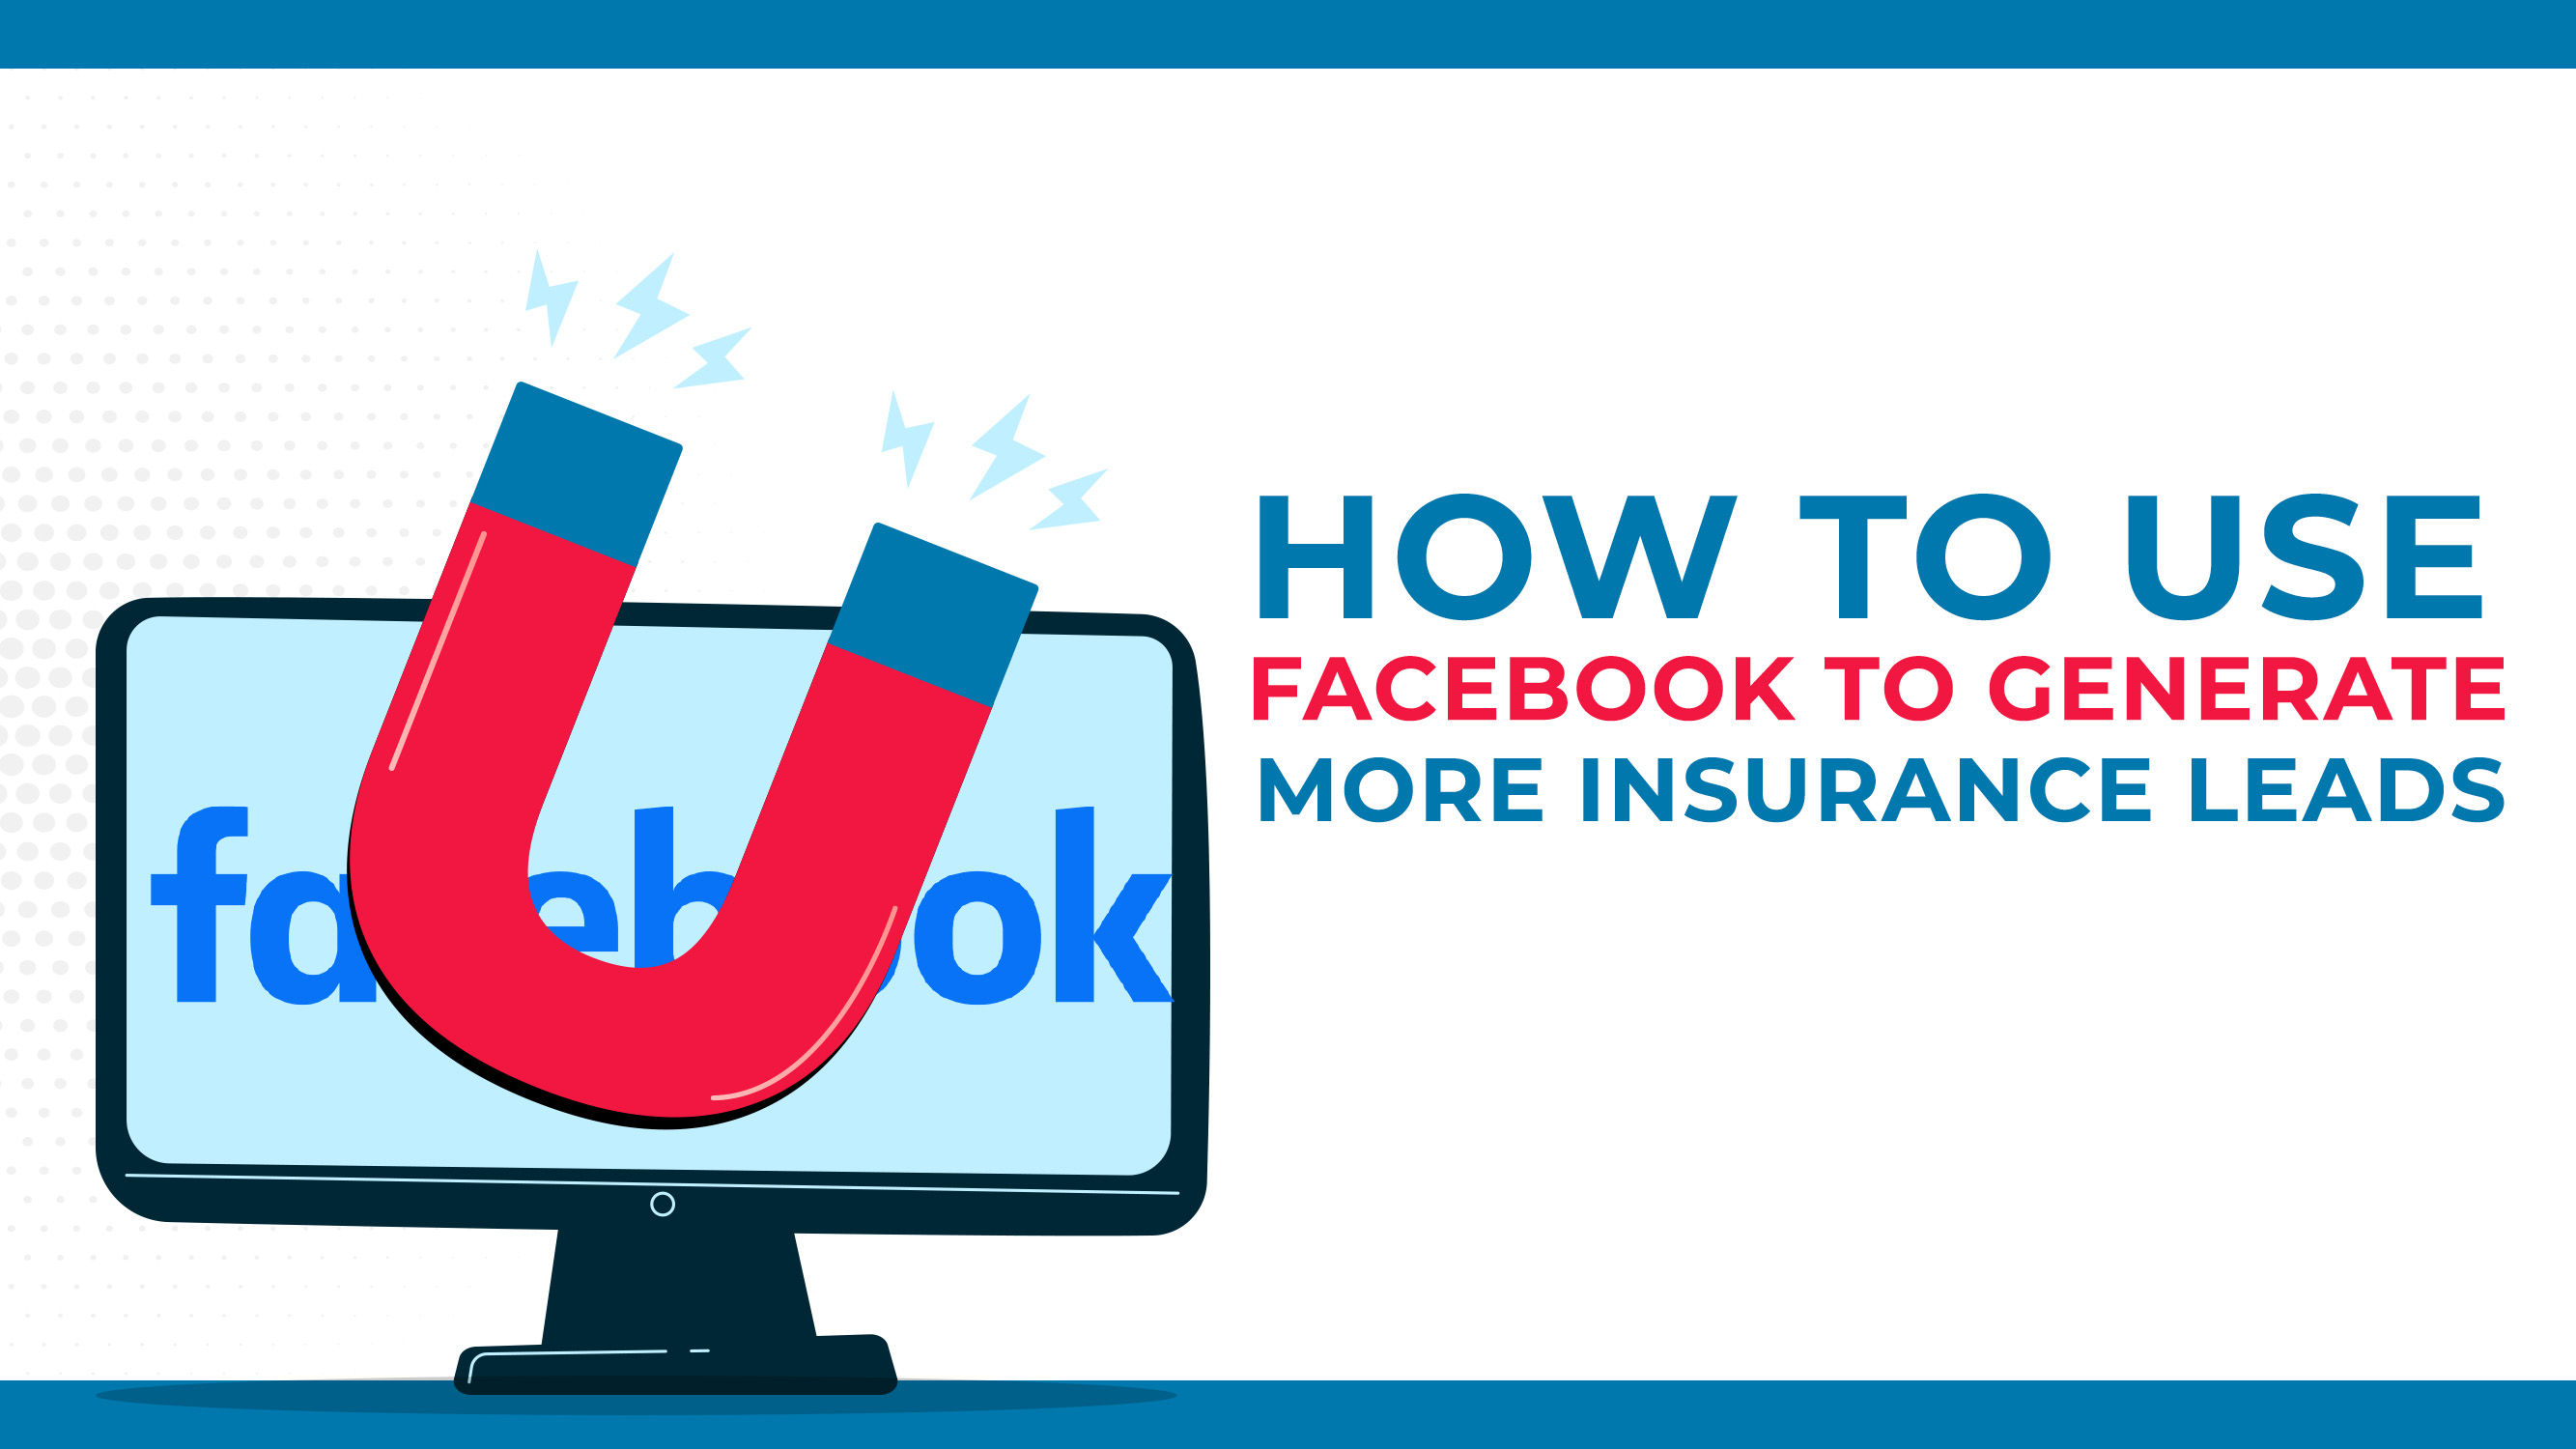 How To Use Facebook To Generate More Insurance Leads